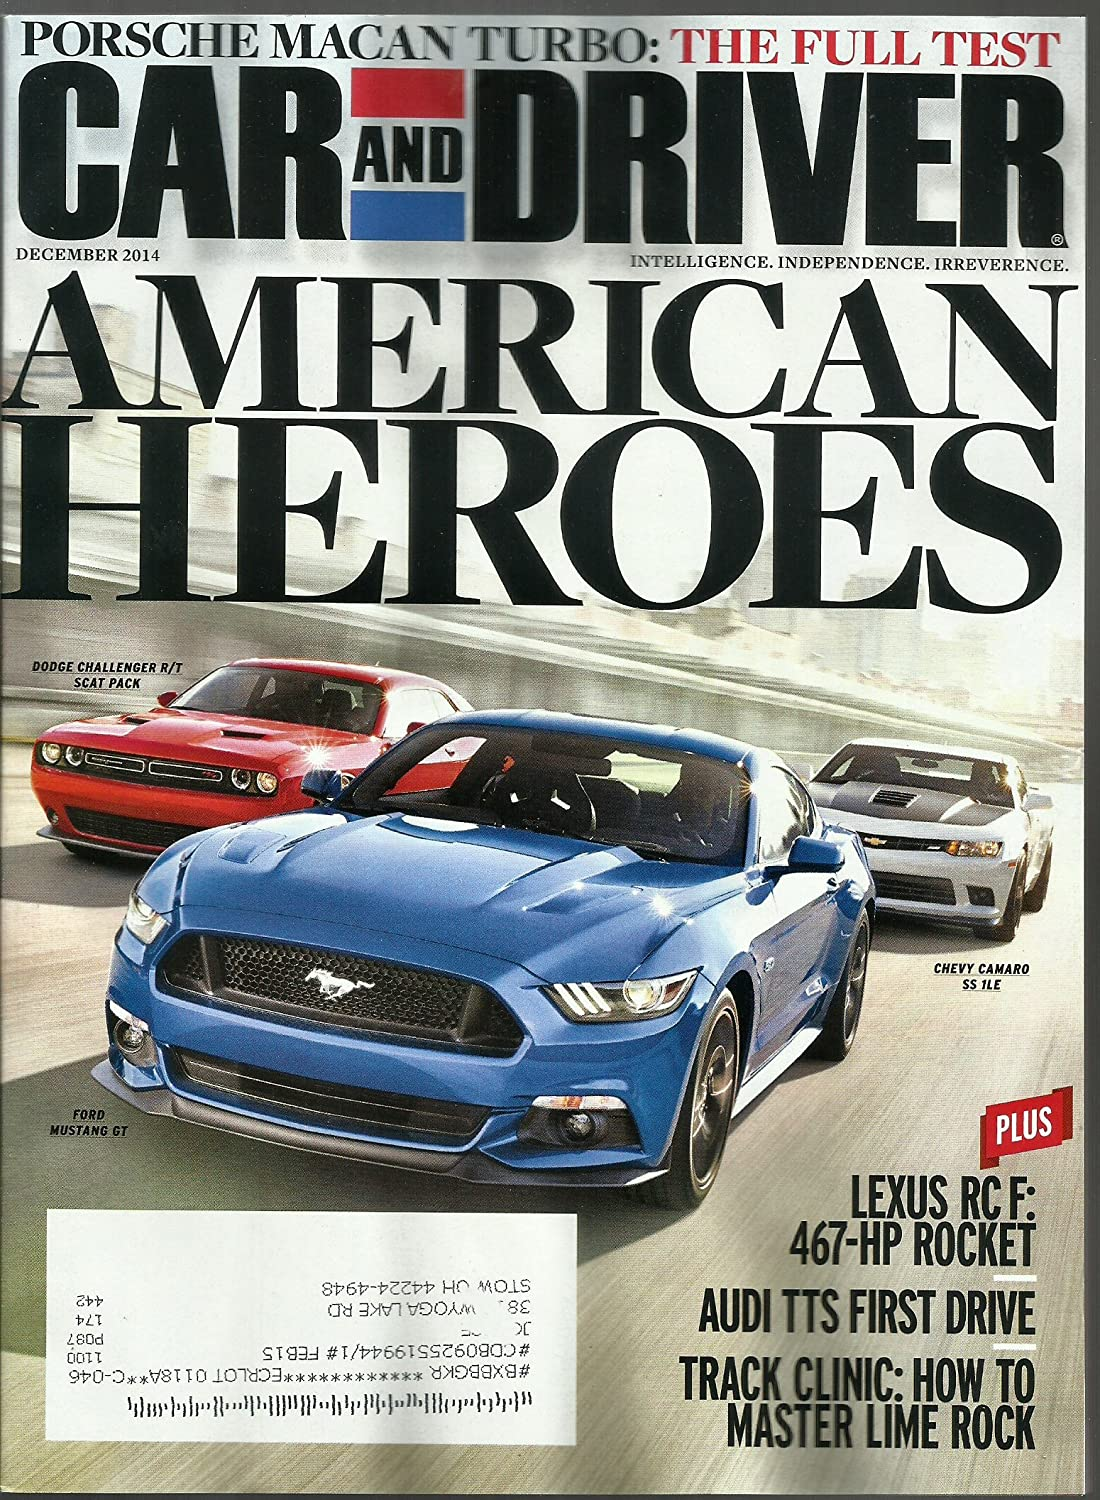 Amazon.com : Car and Driver Magazine December 2014 {Porsche Macan Turbo{}also American Heroes : Everything Else